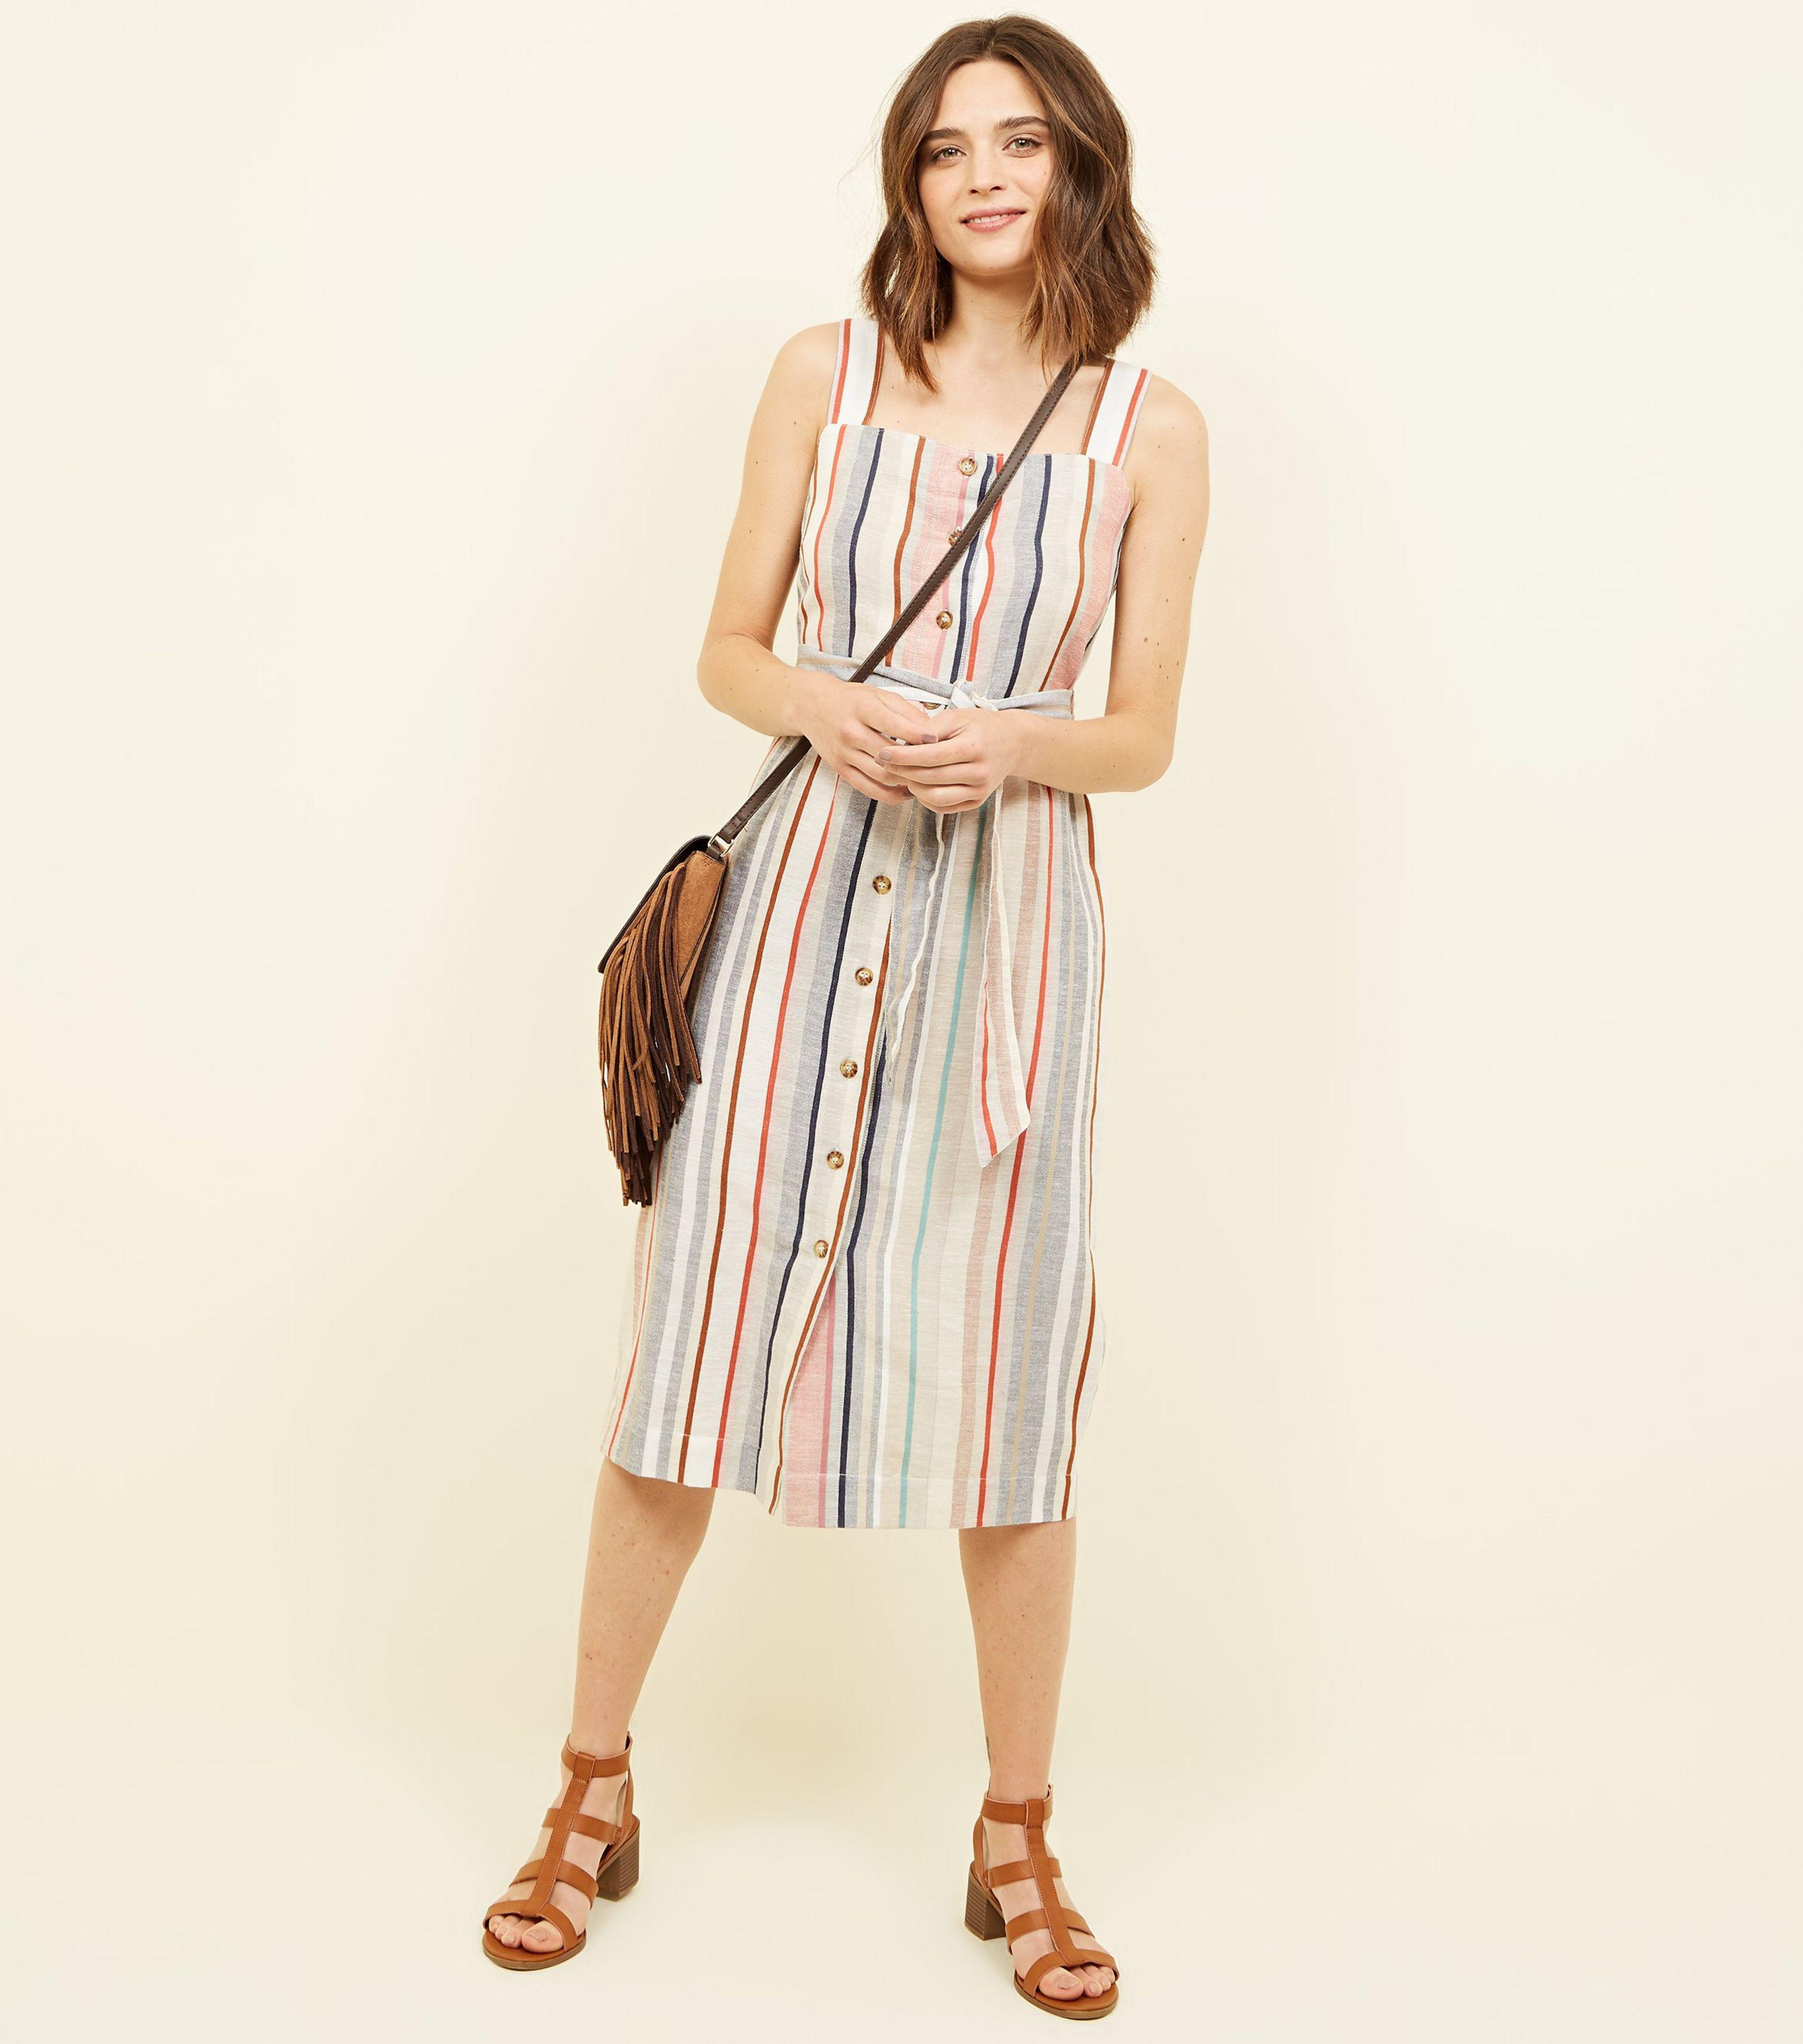 e1c68fc5ba Gallery. Previously sold at  New Look · Women s White Dresses Women s White  Linen ...